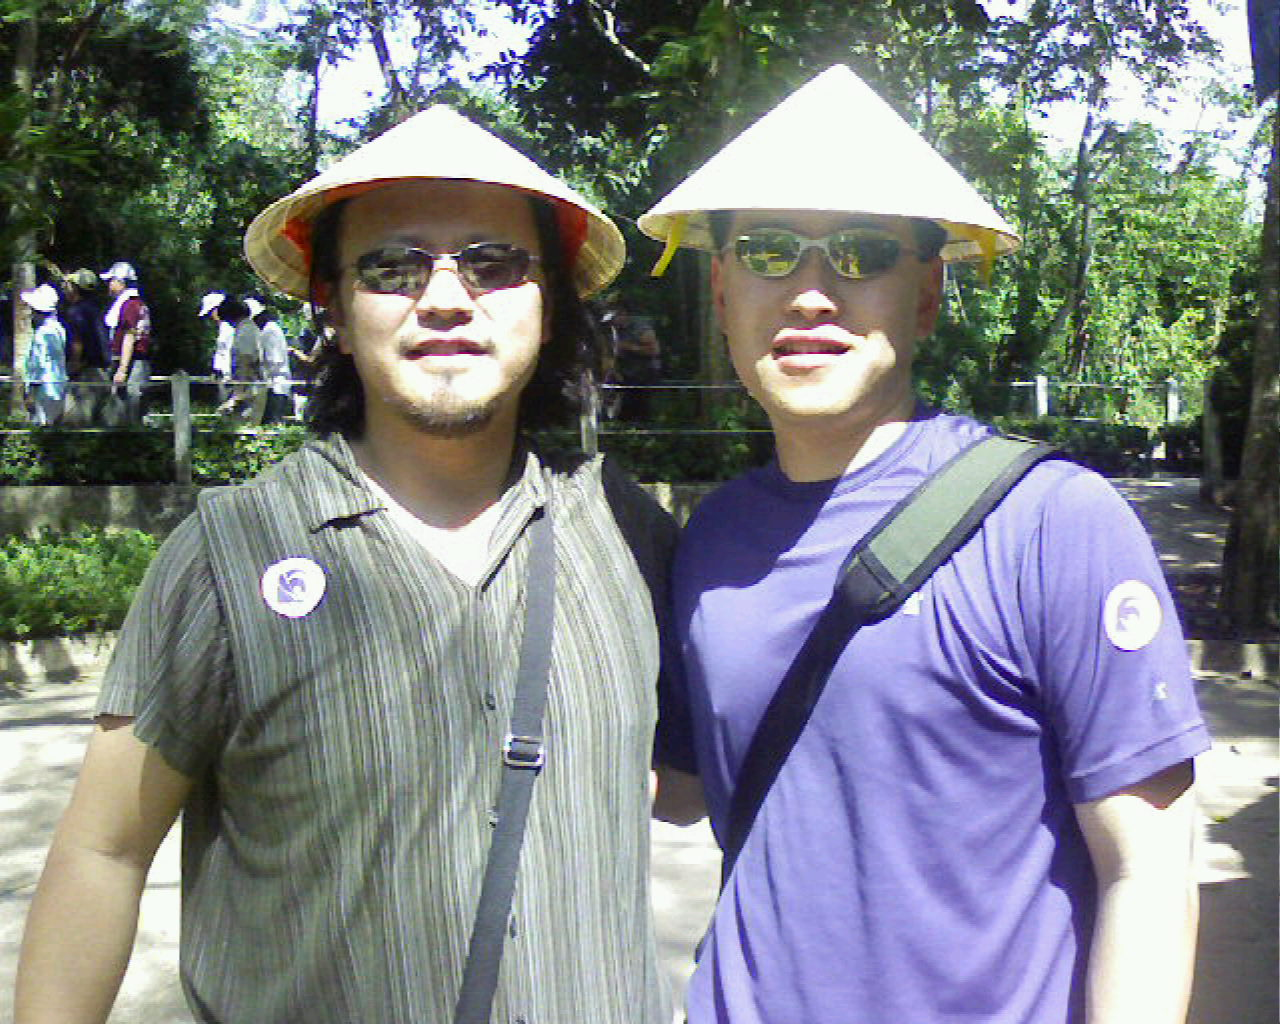 Ben and me with hats.jpg